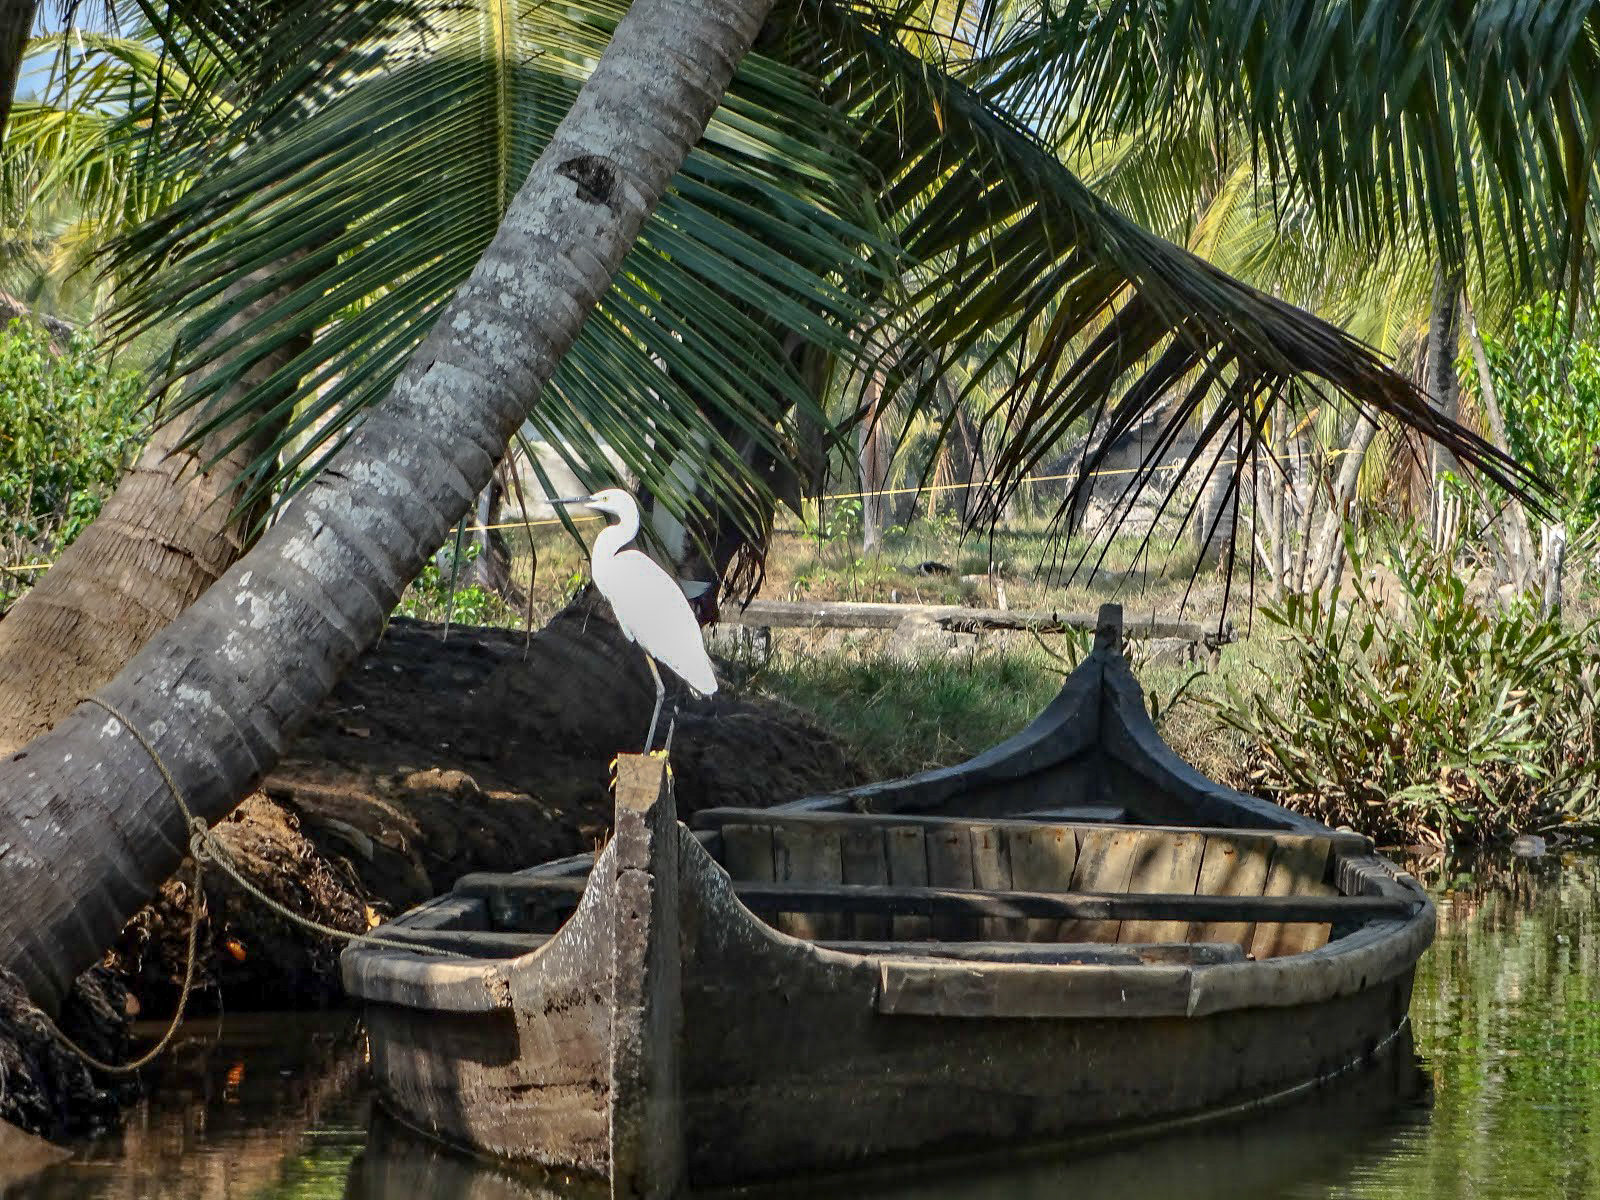 A white little egrot heron bird sits on the bow of a wooden boat in the Kappil Backwaters, Kerala, India